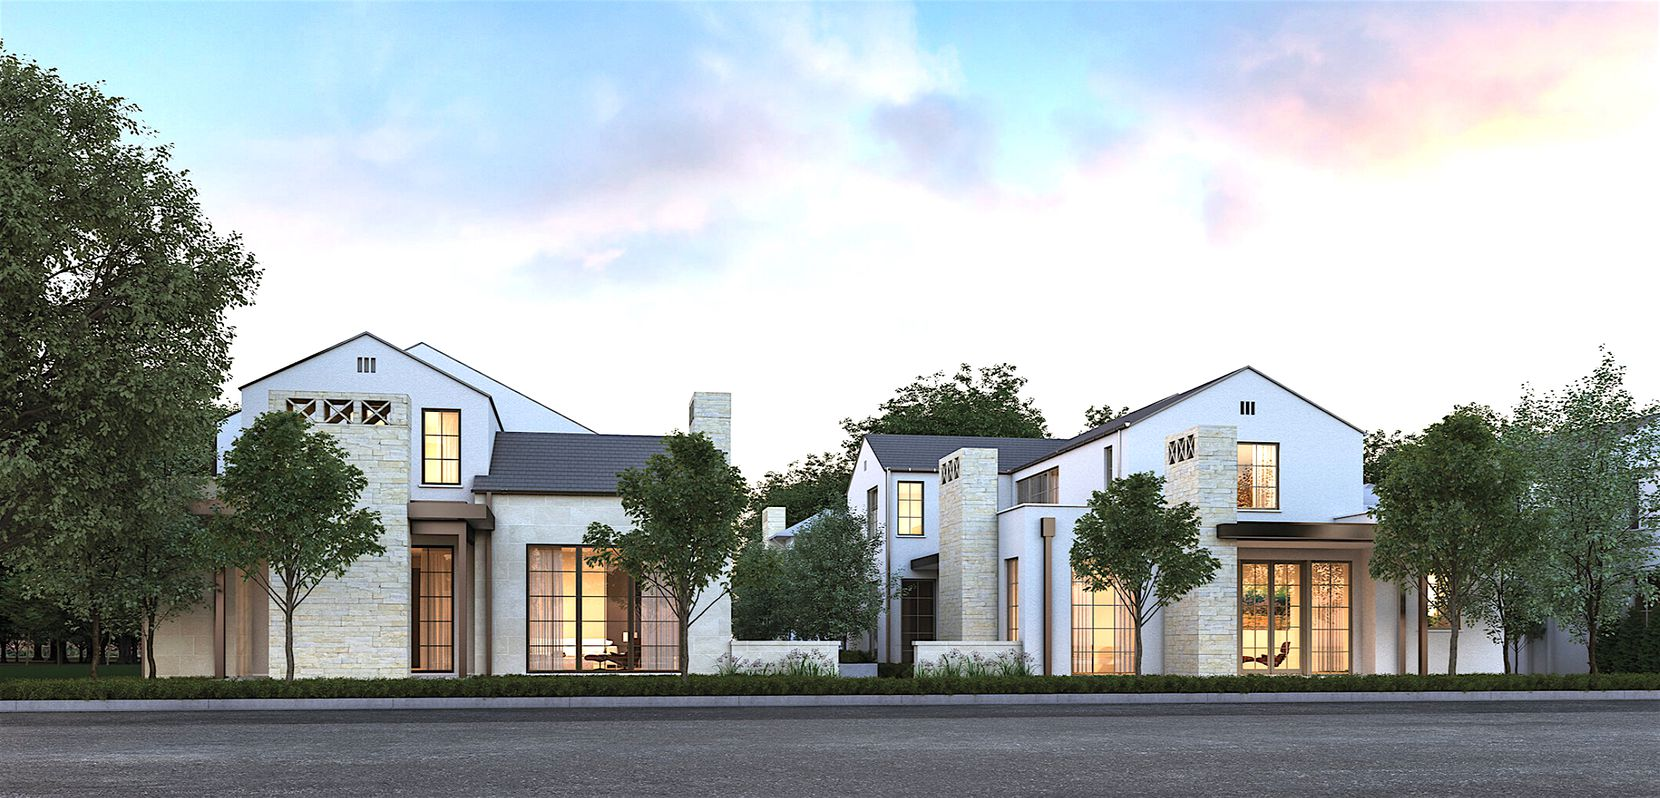 Courtyard homes in the community will be built in groups of four.